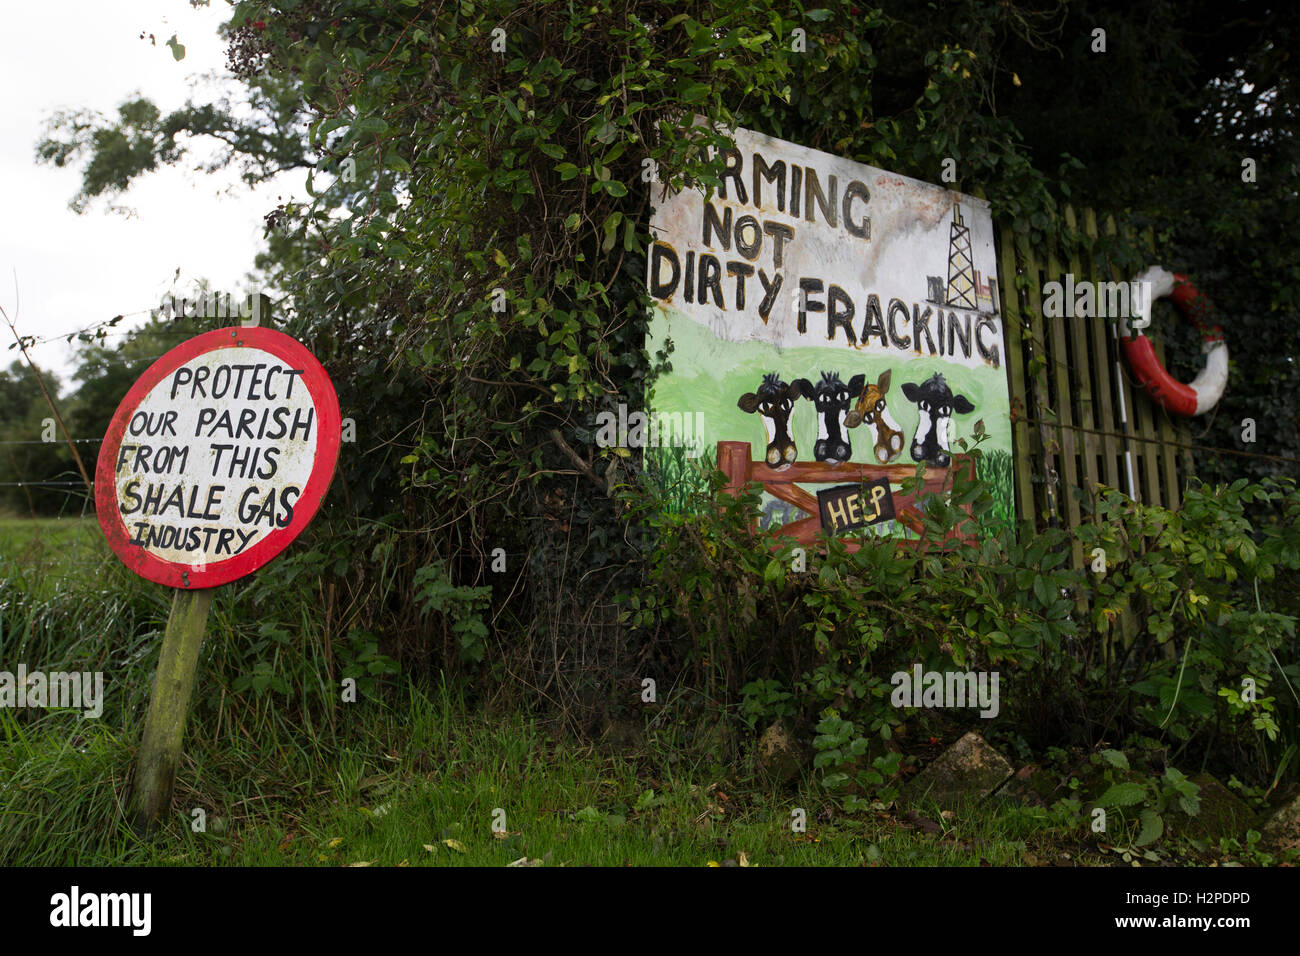 Anti-fracking signs in the village of Wharles, close to the proposed site at Roseacre Wood, Lancashire where fracking - Stock Image